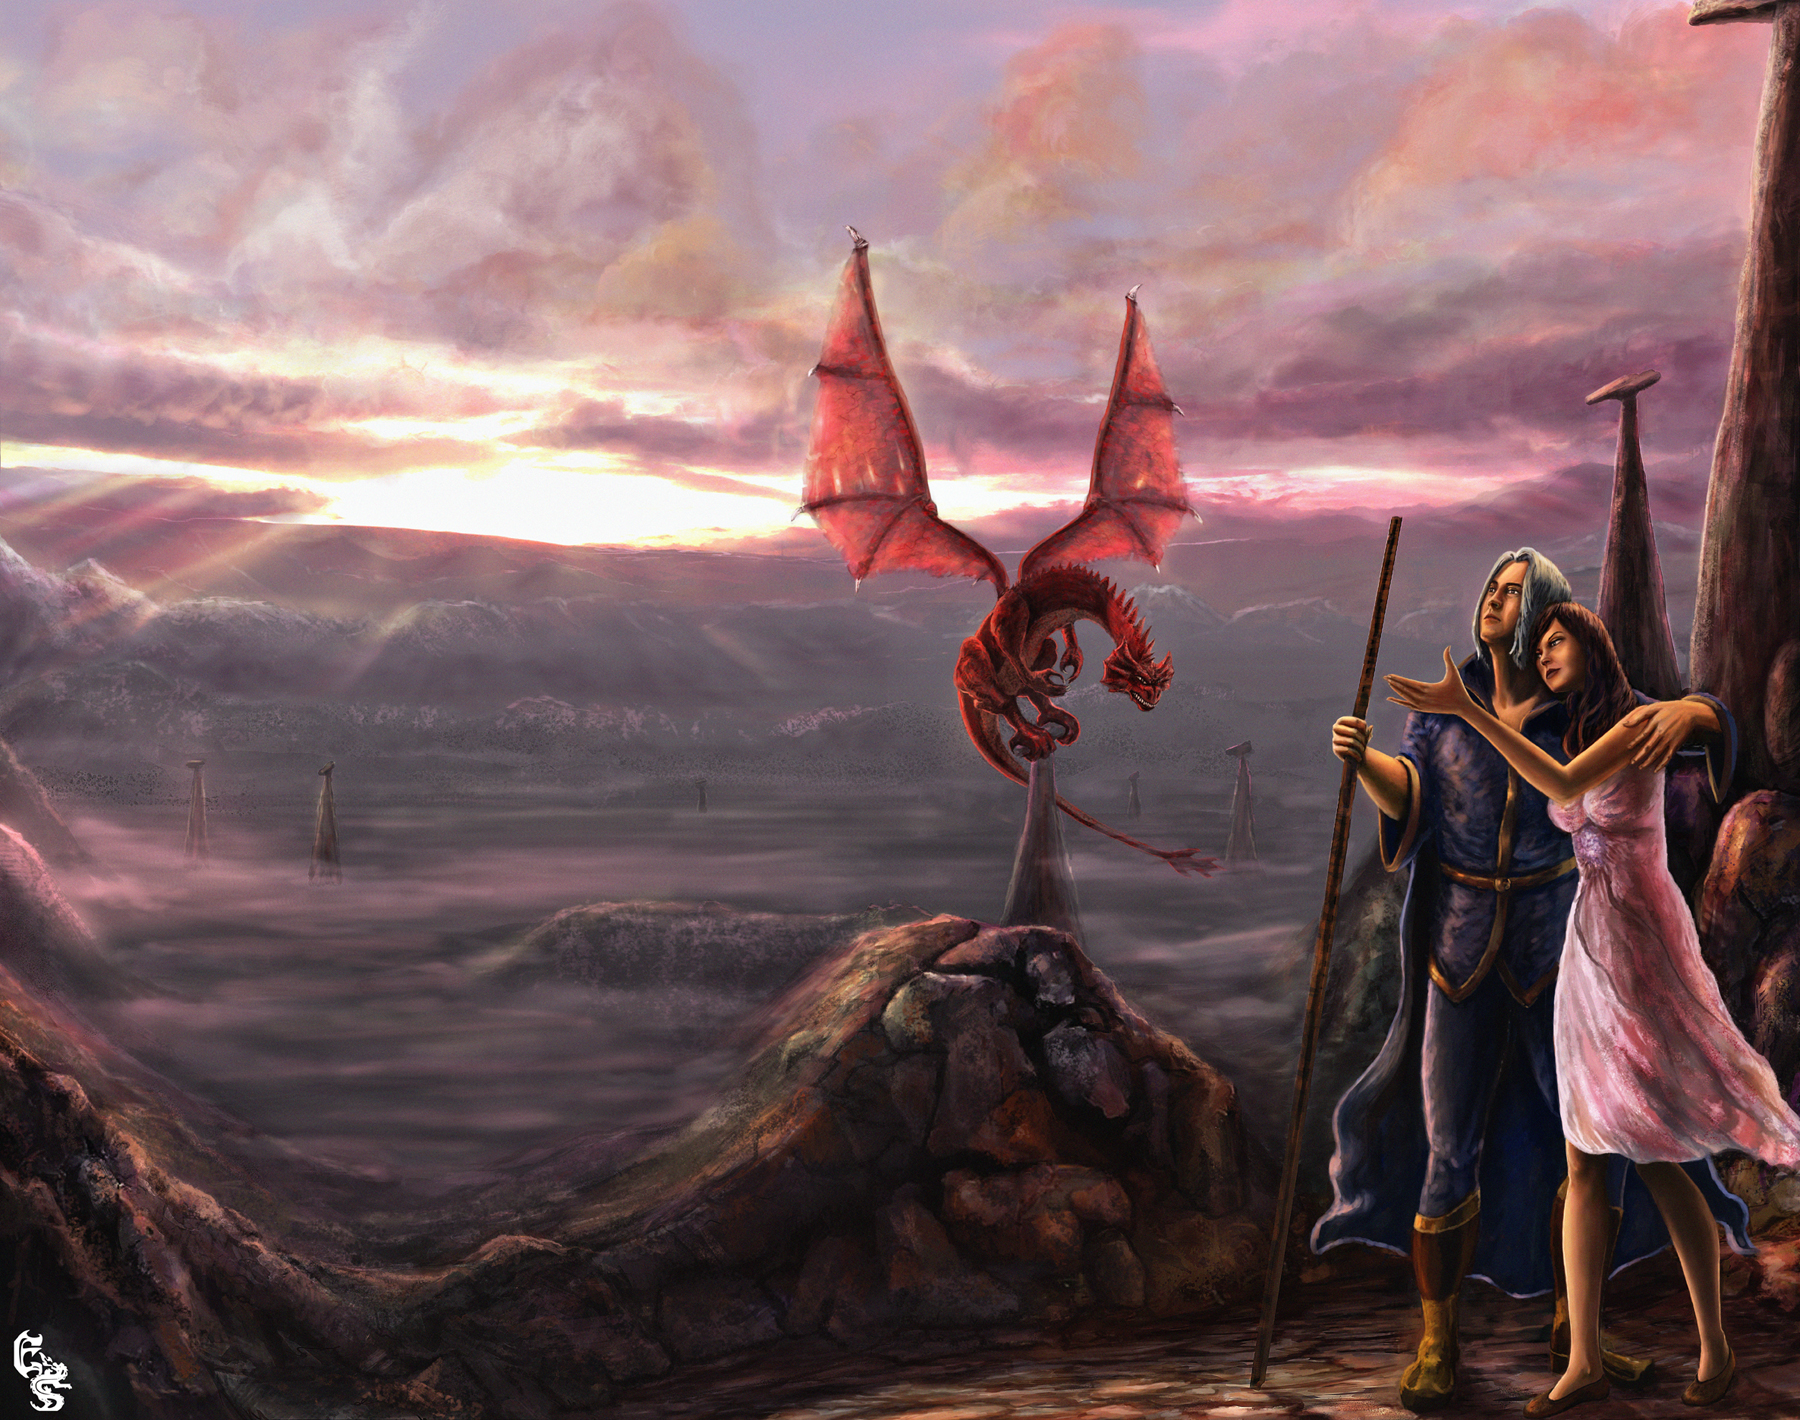 Dragonlance Wallpaper Dragon lance by designes 1800x1420